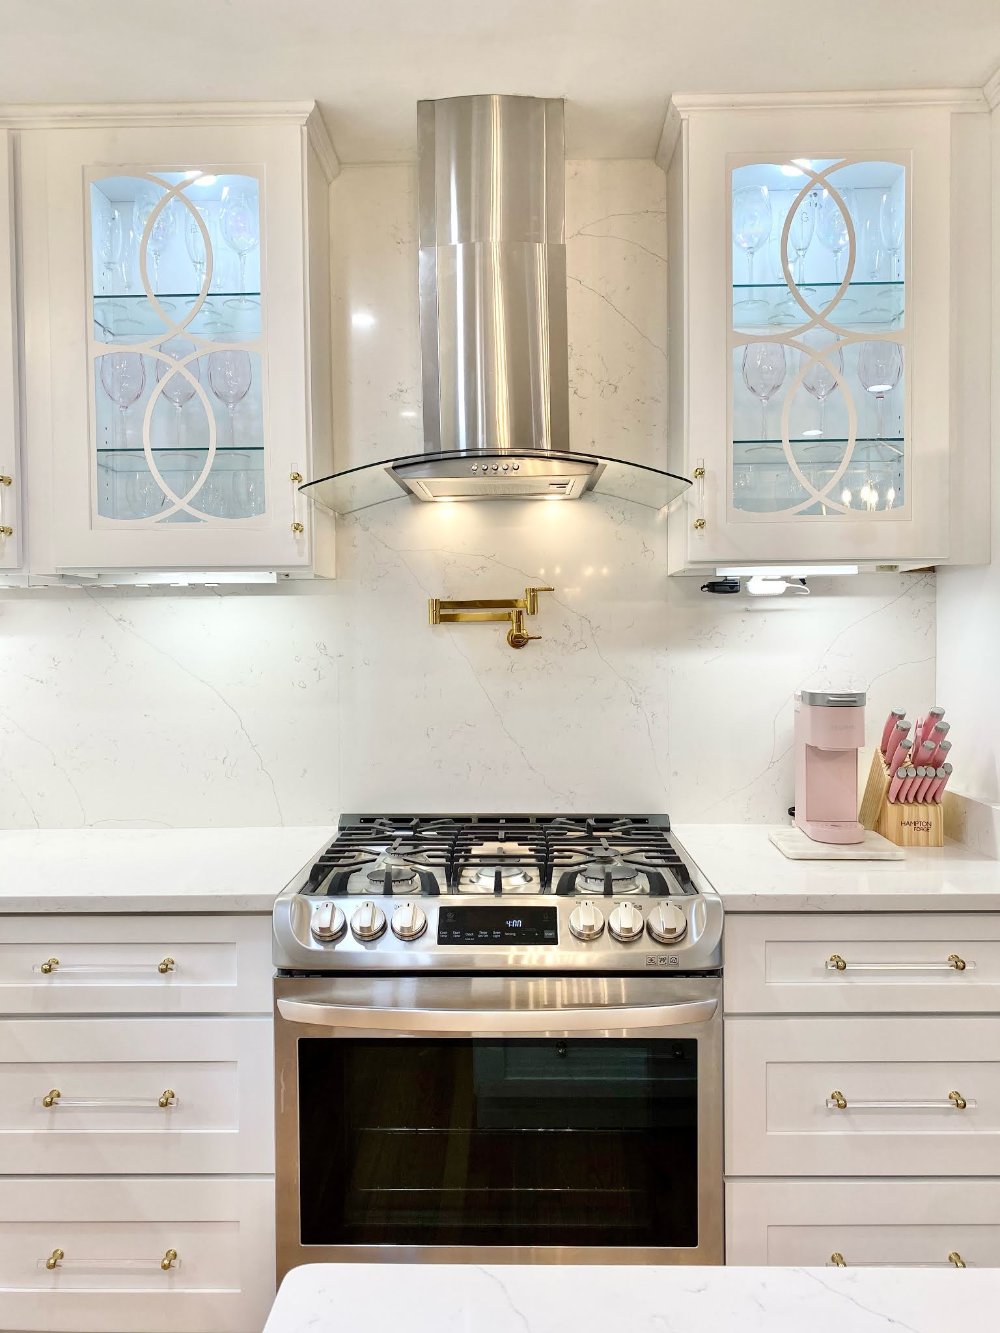 Golda Of Pretty Twinkle Design Reveals Her White And Gold Kitchen Featuring Schaub S Lumiere Transitional Acry In 2020 Gold Kitchen Kitchen Renovation Acrylic Cabinets